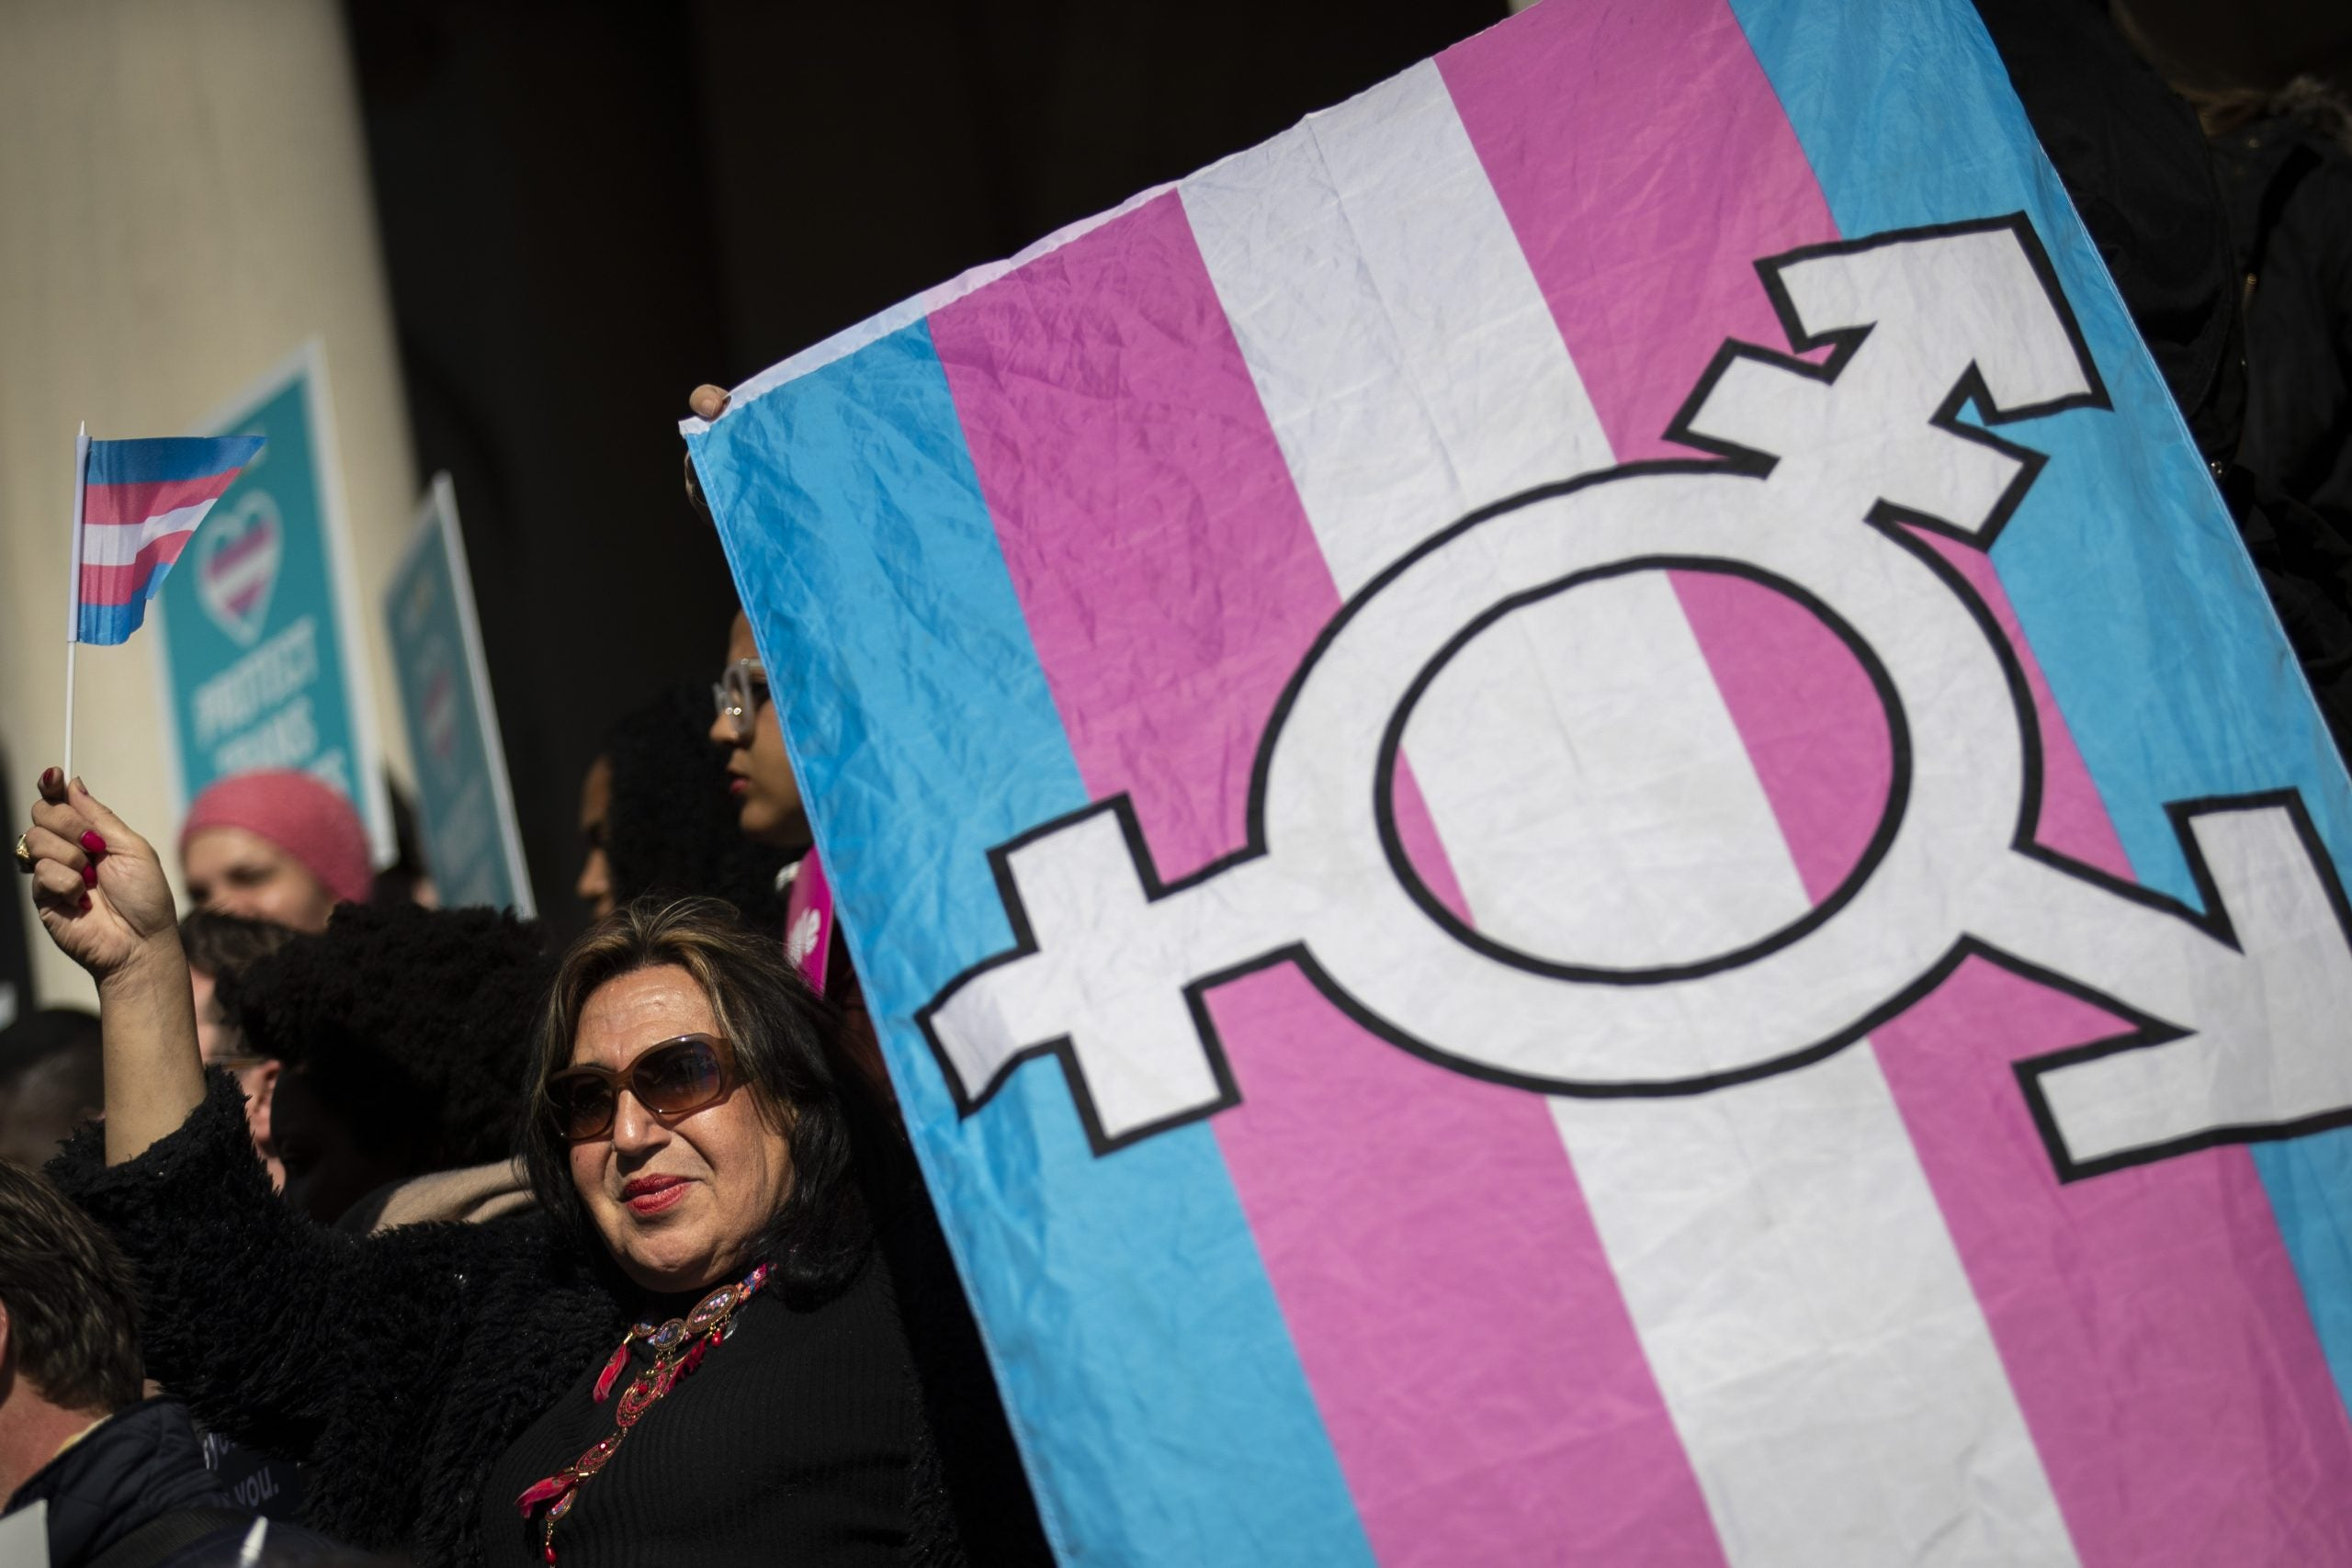 T is for Trans Movement: an ongoing struggle for a tiny, vulnerable minority